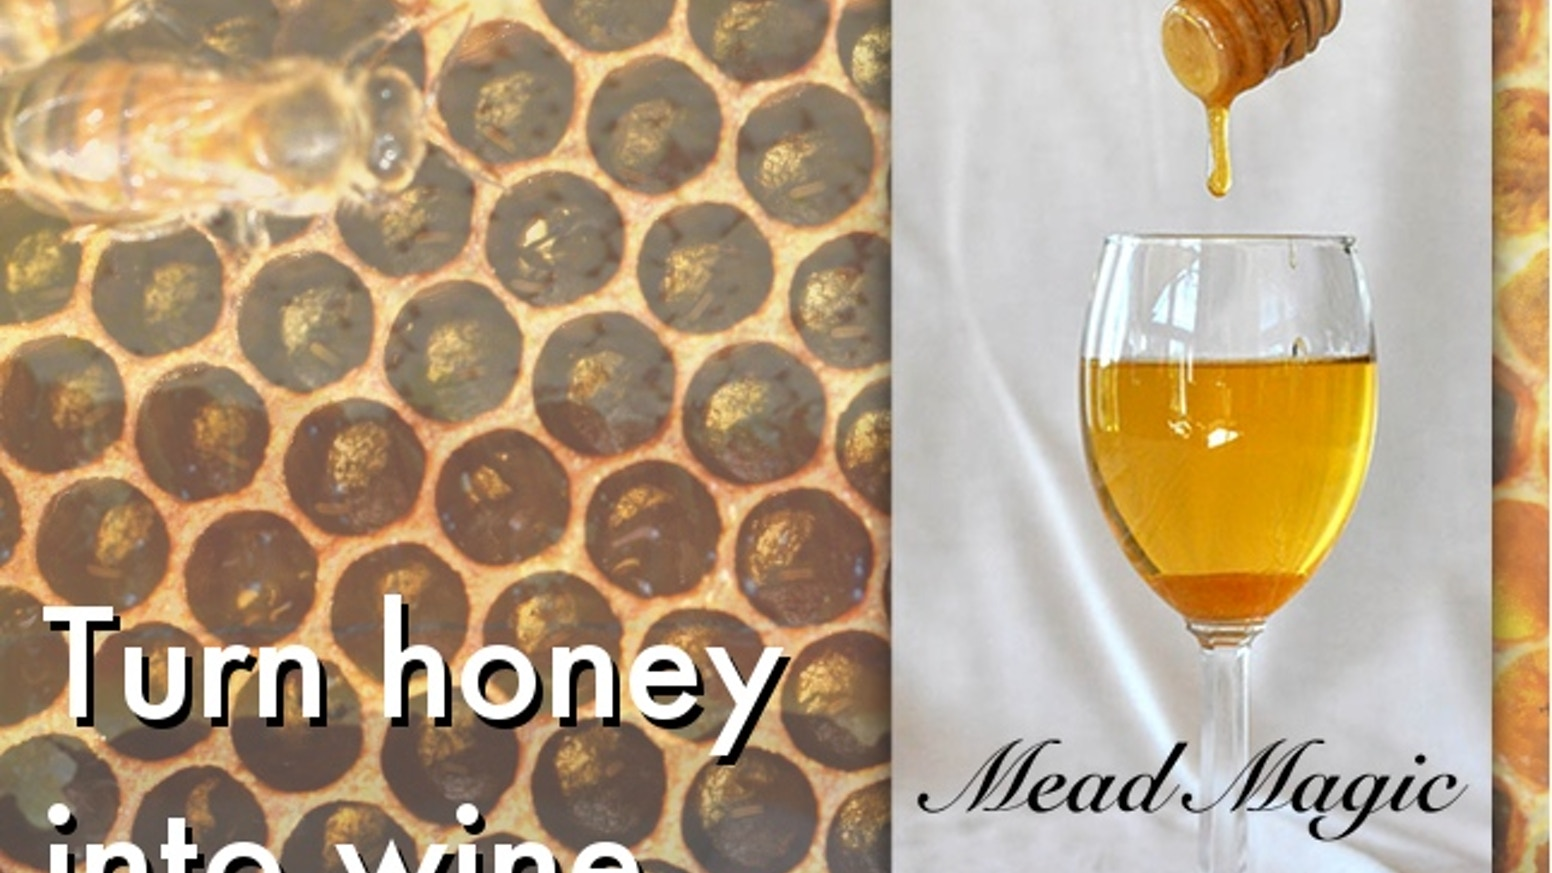 Mead Magic kits contain almost everything you need to make the world's oldest alcoholic beverage - just add water!